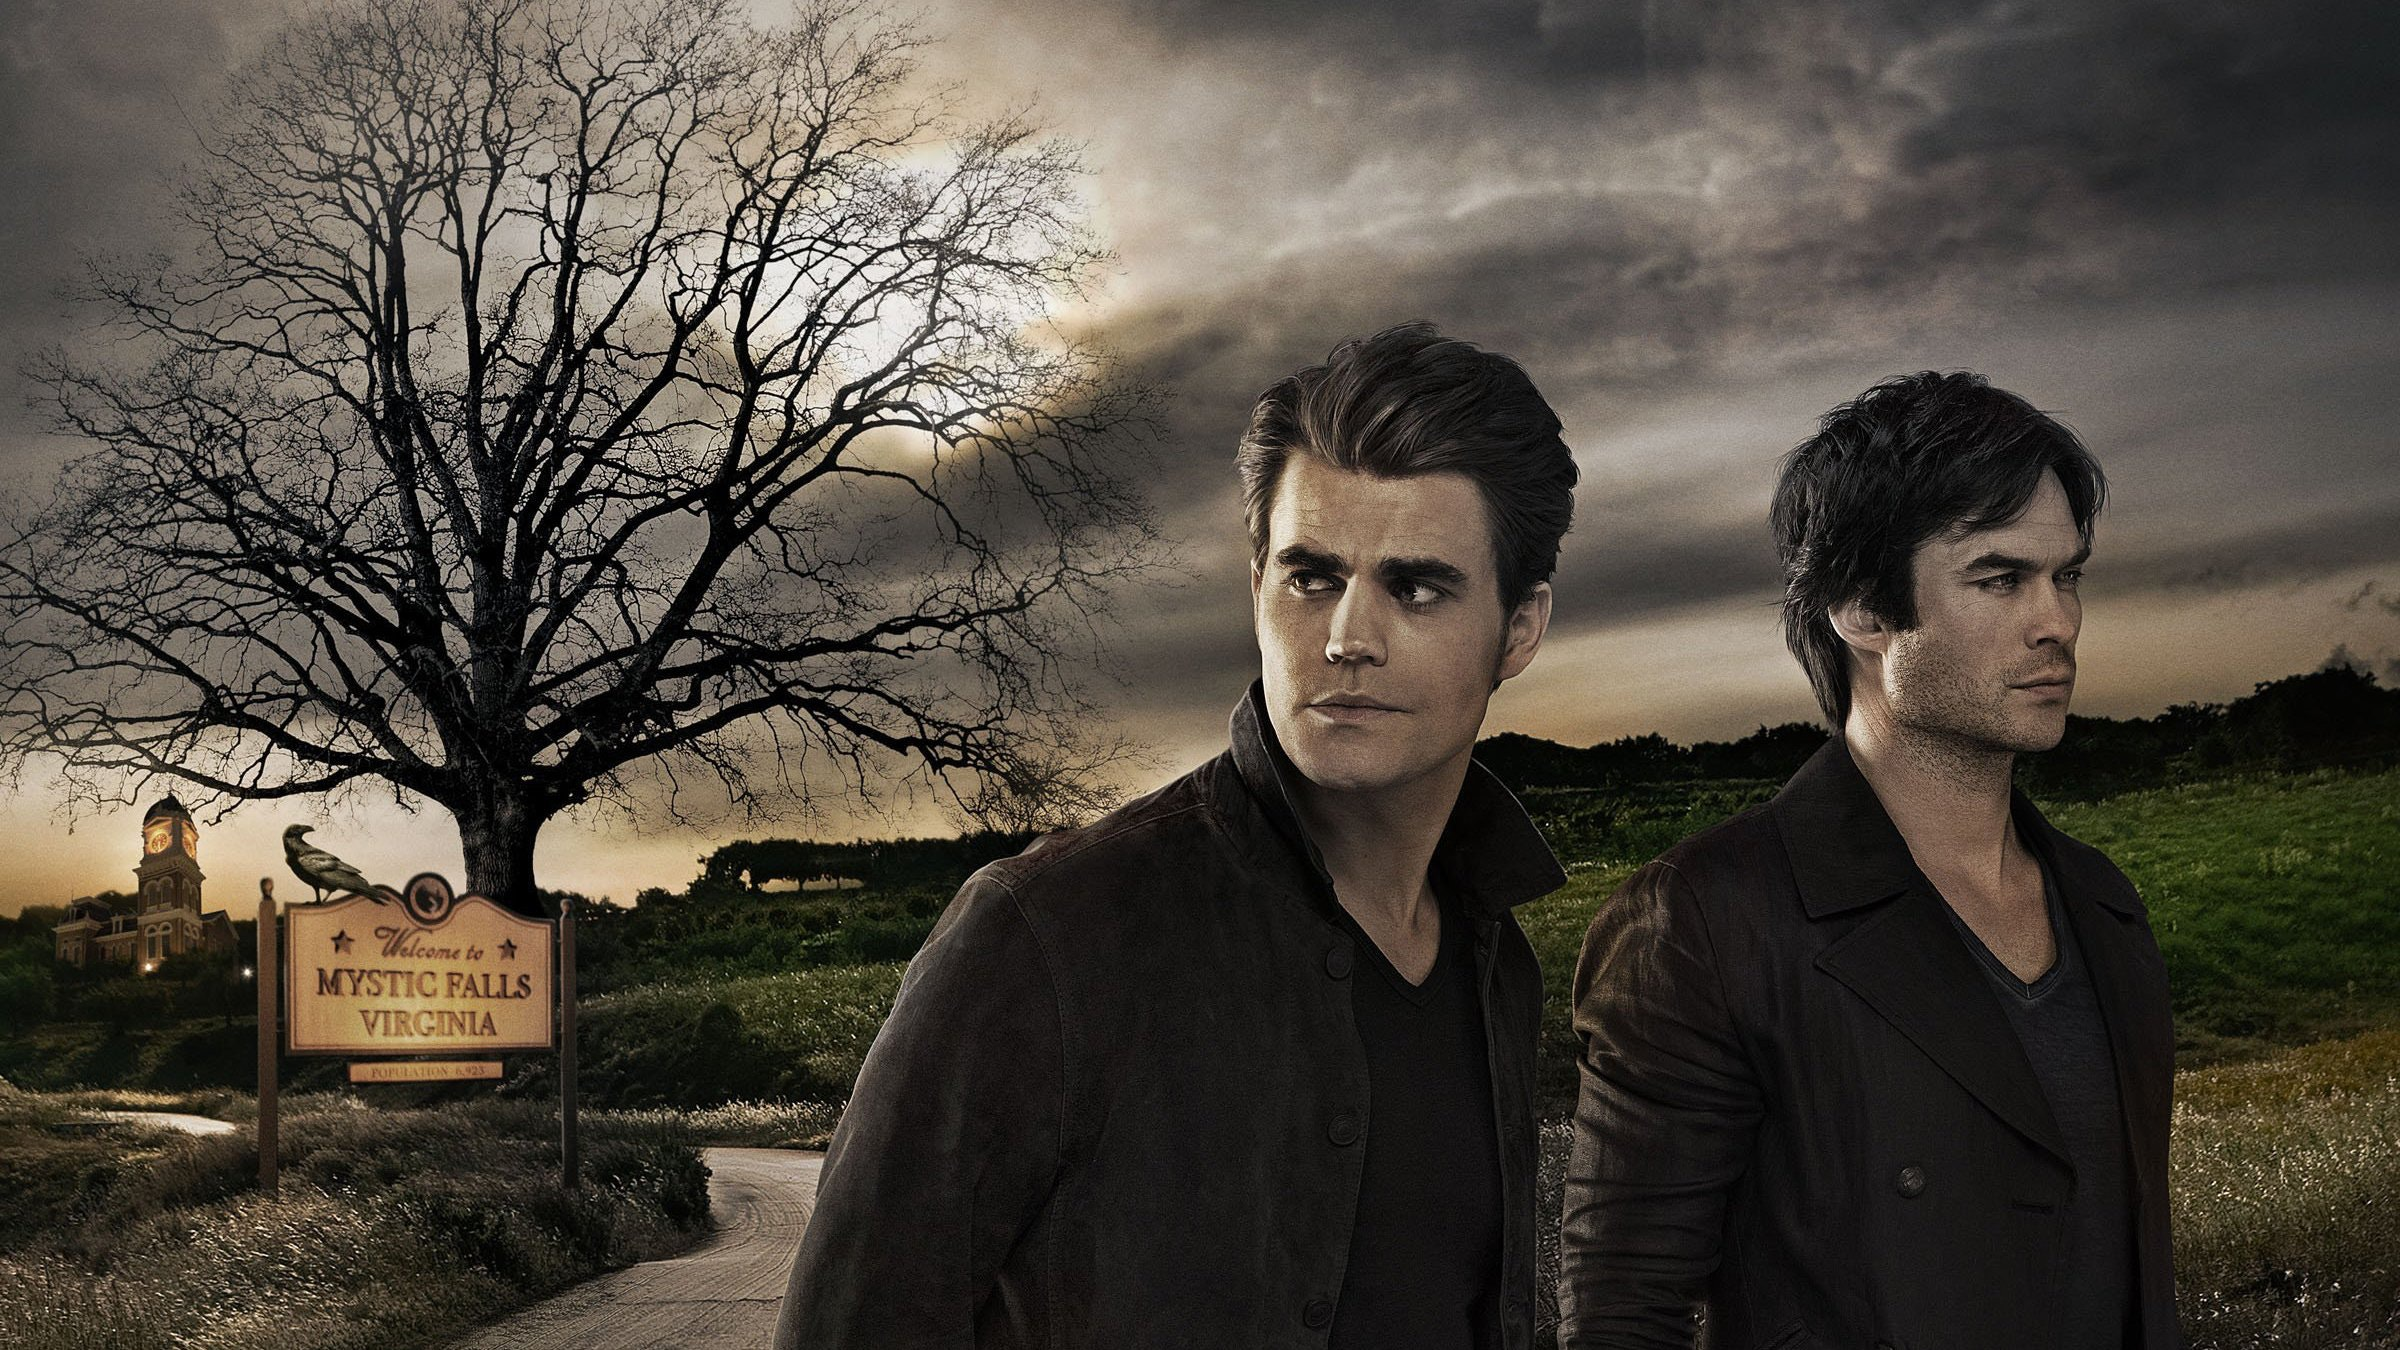 The Wire Season 4 Theme Song Mp3 Download Data Wiring Blank Green Printed Circuit Board Pcb Stock Photo Image 63563161 Vampire Diaries 2 Music Songs Tunefind Rh Com